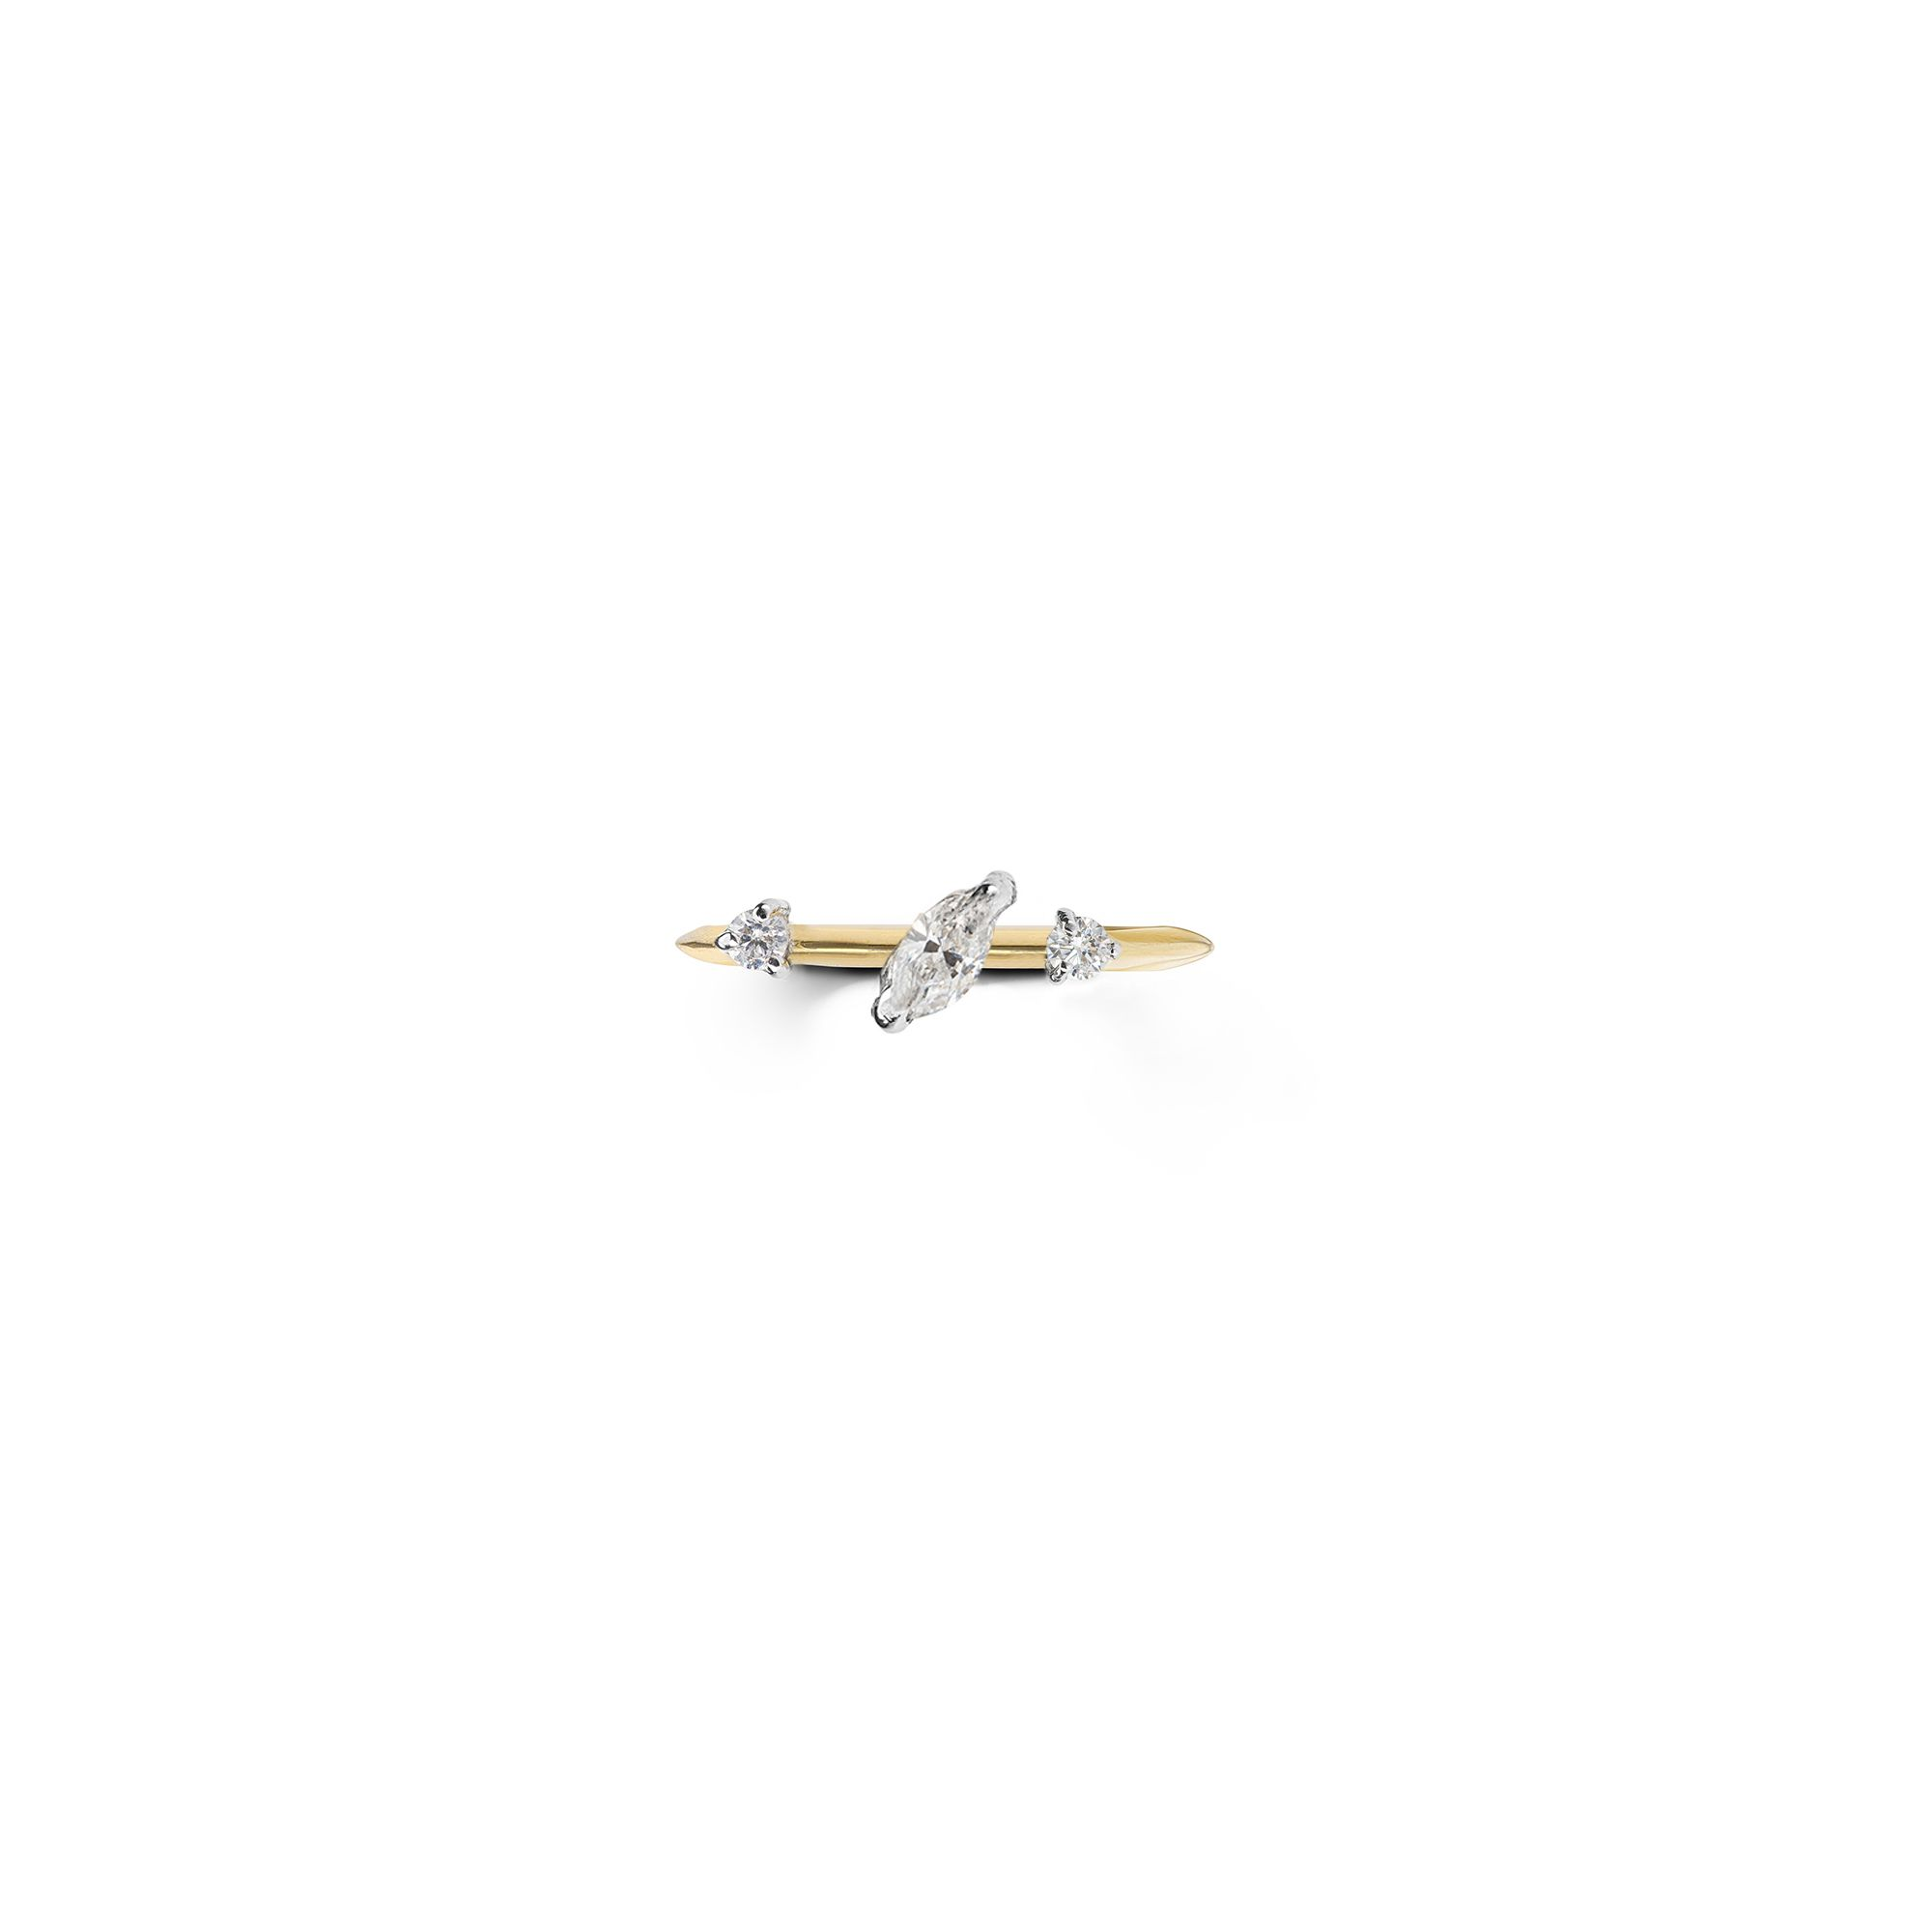 Yellow gold 'Balance' ring with marquise Ring in yellow gold and diamods